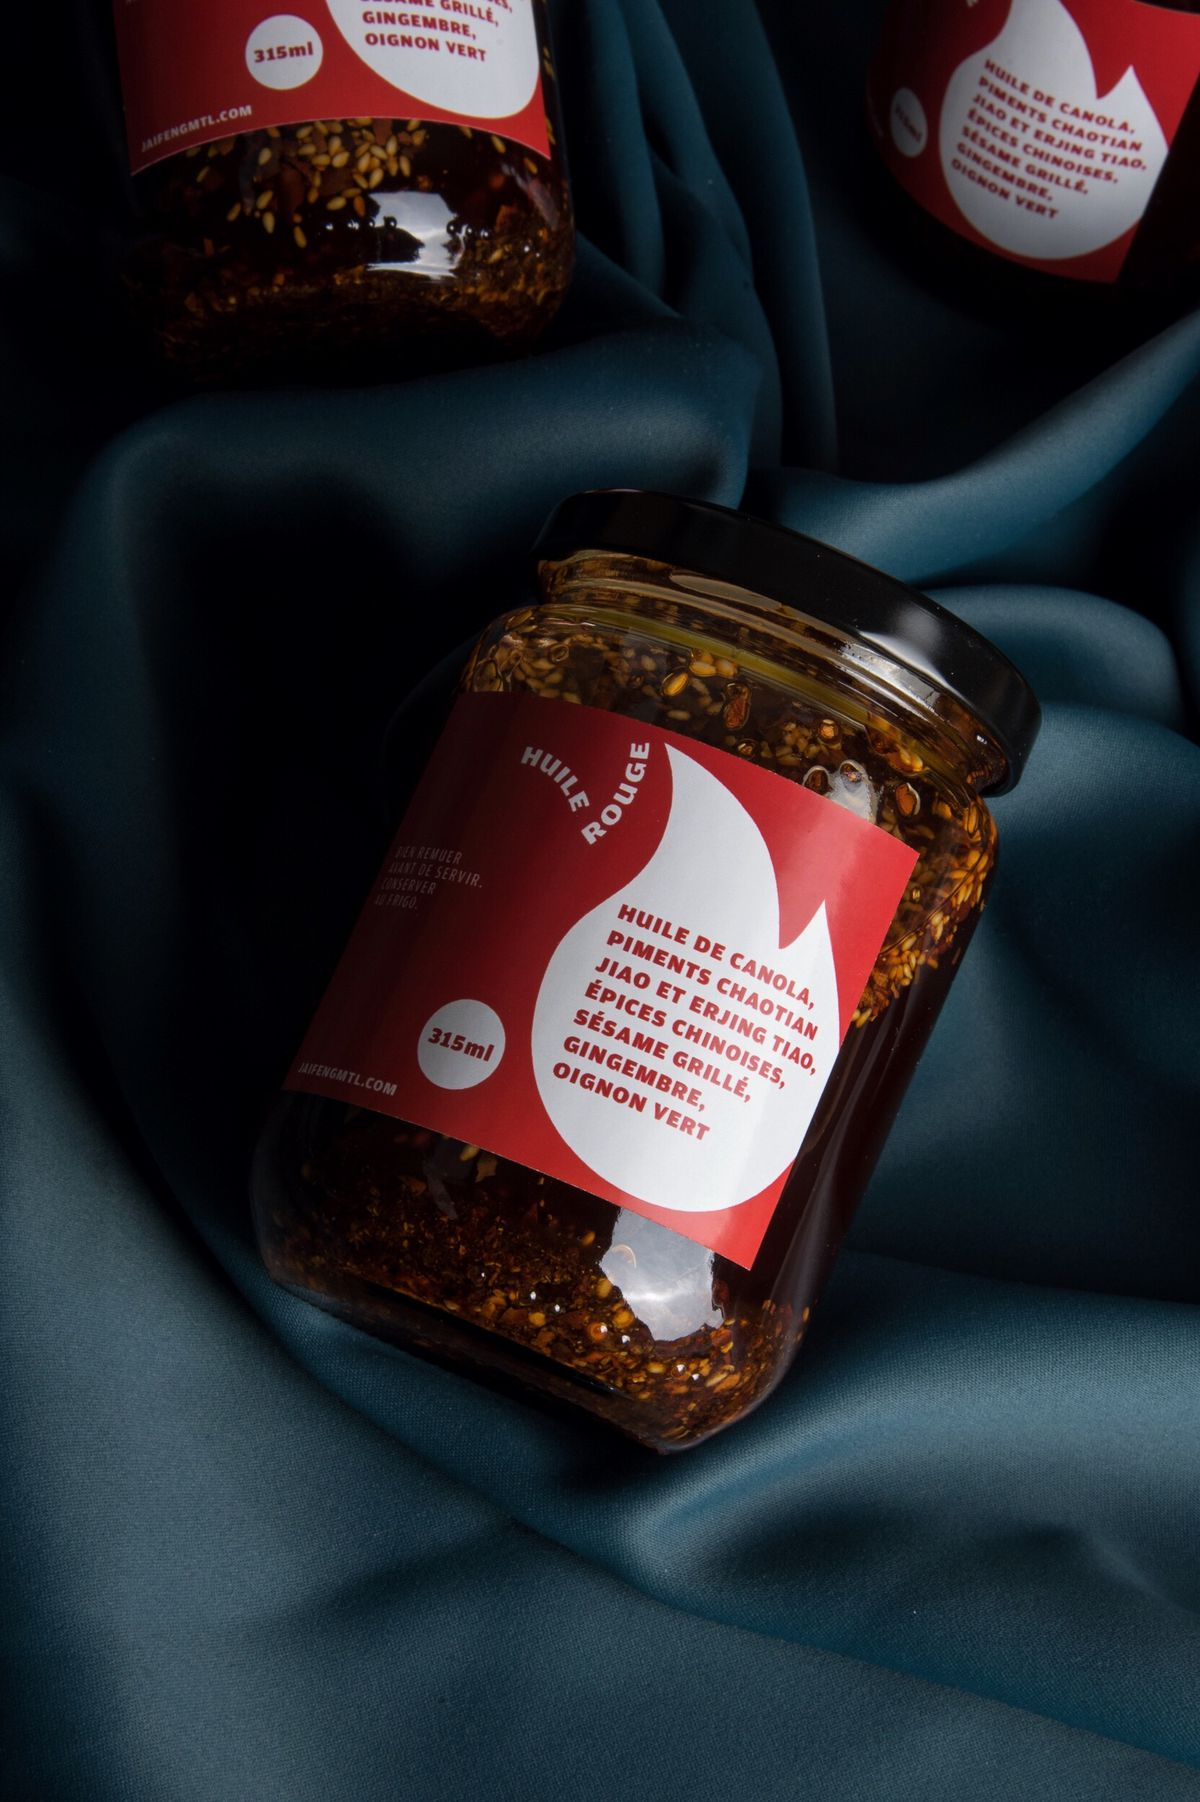 jars of chili oil with red label